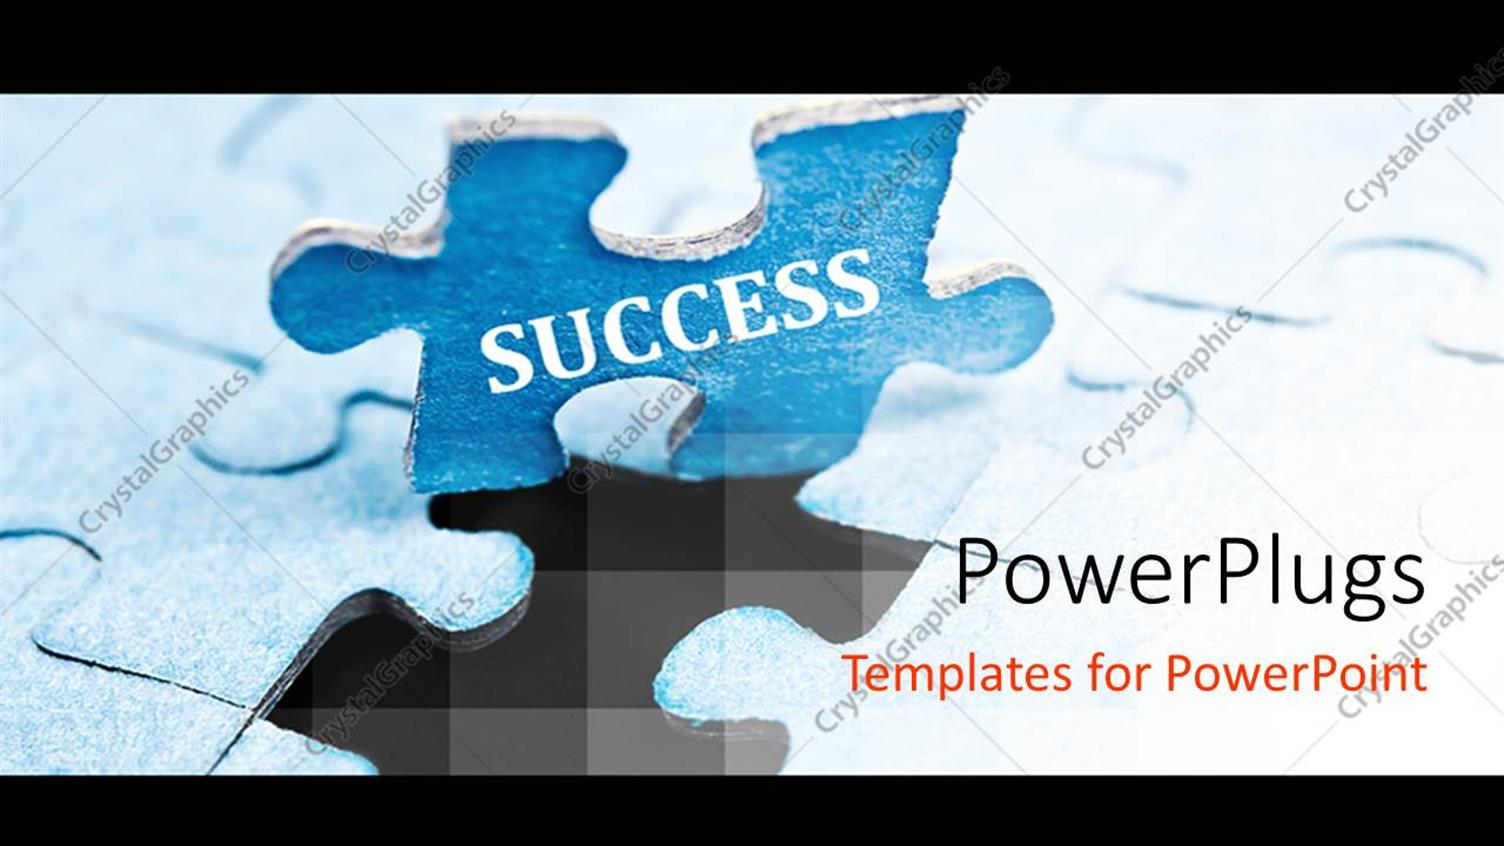 PowerPoint Template Displaying a Blue Puzzle with a Text that Spells Out the Word